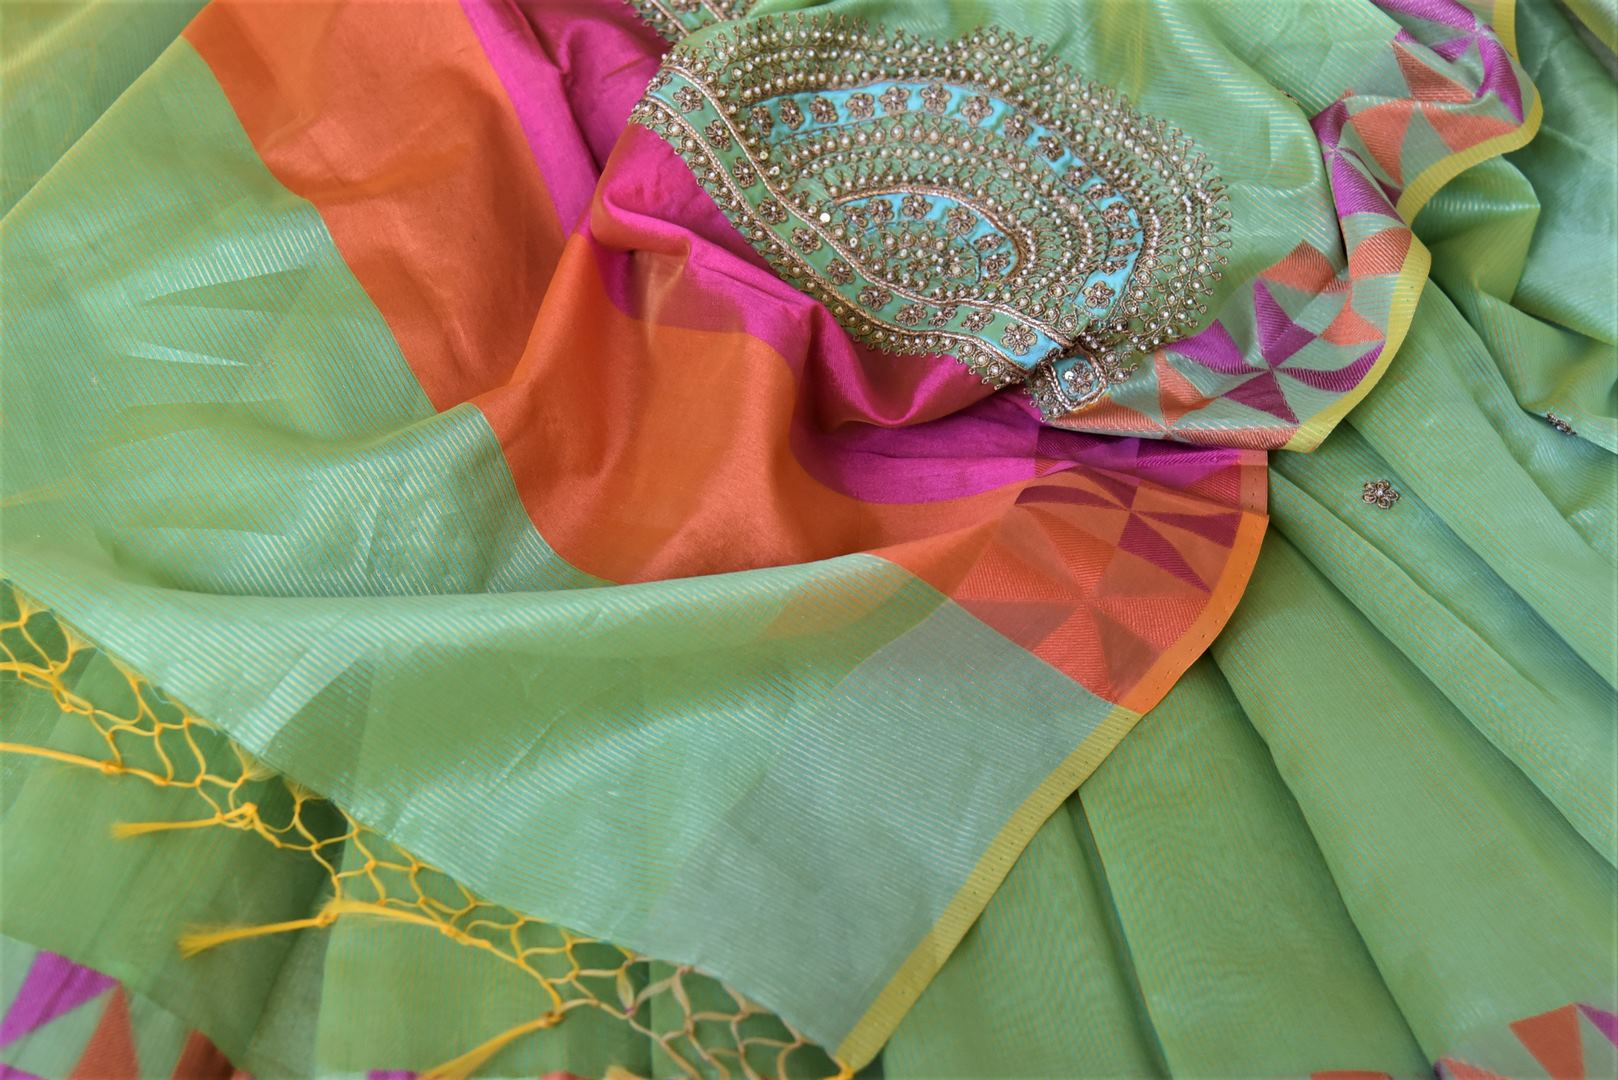 Stunning light green embroidered handloom saree for online shopping in USA with colorful border. Buy exquisite handloom sarees, pure silk sarees from Pure Elegance Indian clothing store in USA for festive occasions.-details